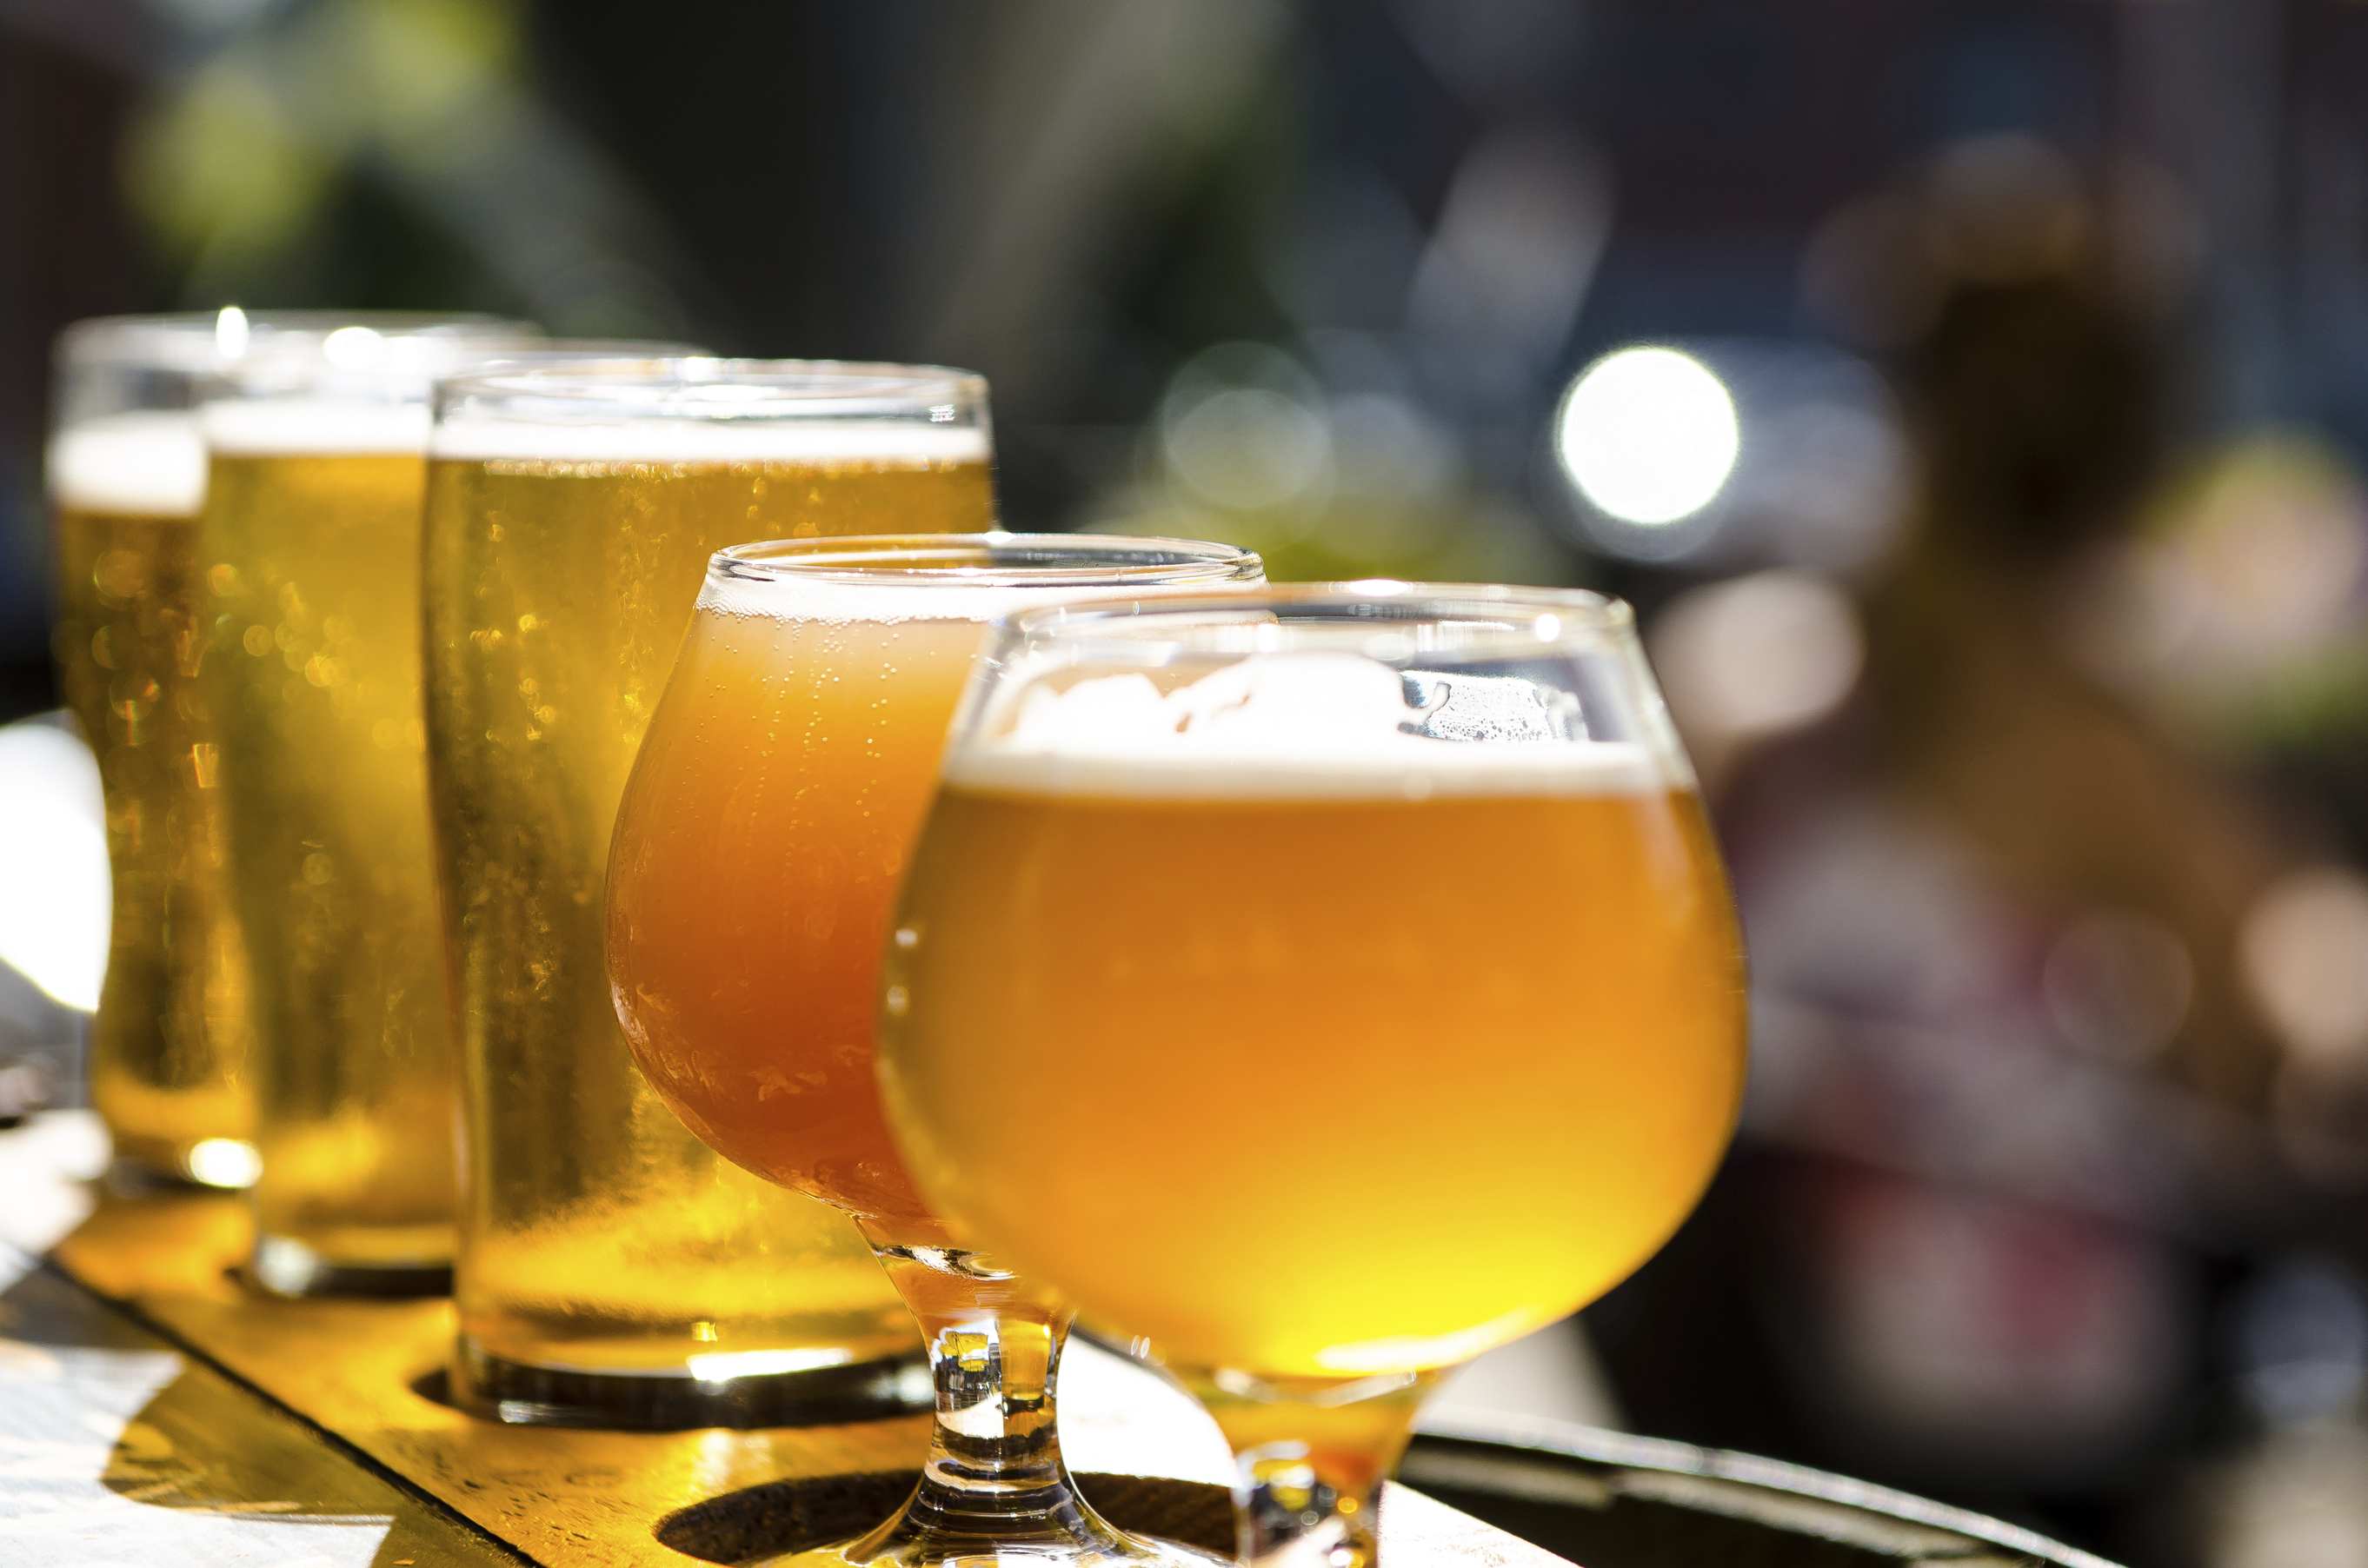 image of many beer glasses filled with beer